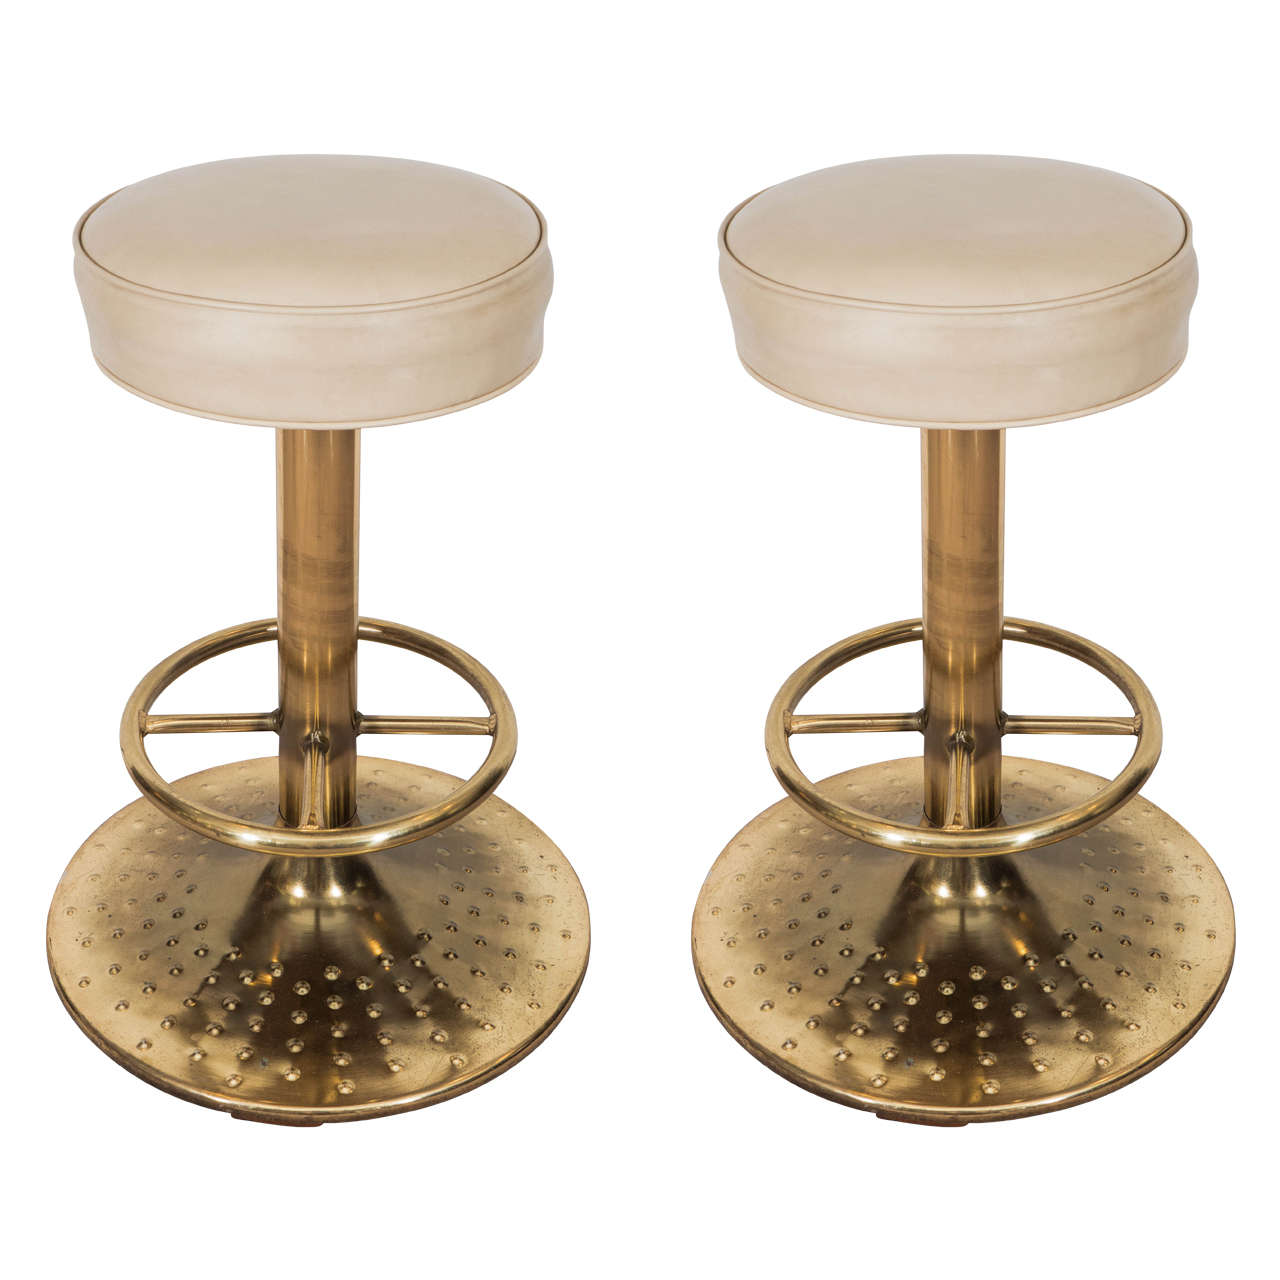 Great Modernistic Midcentury Pair of Brass Bar Stools at  : X from 1stdibs.com size 1280 x 1280 jpeg 97kB